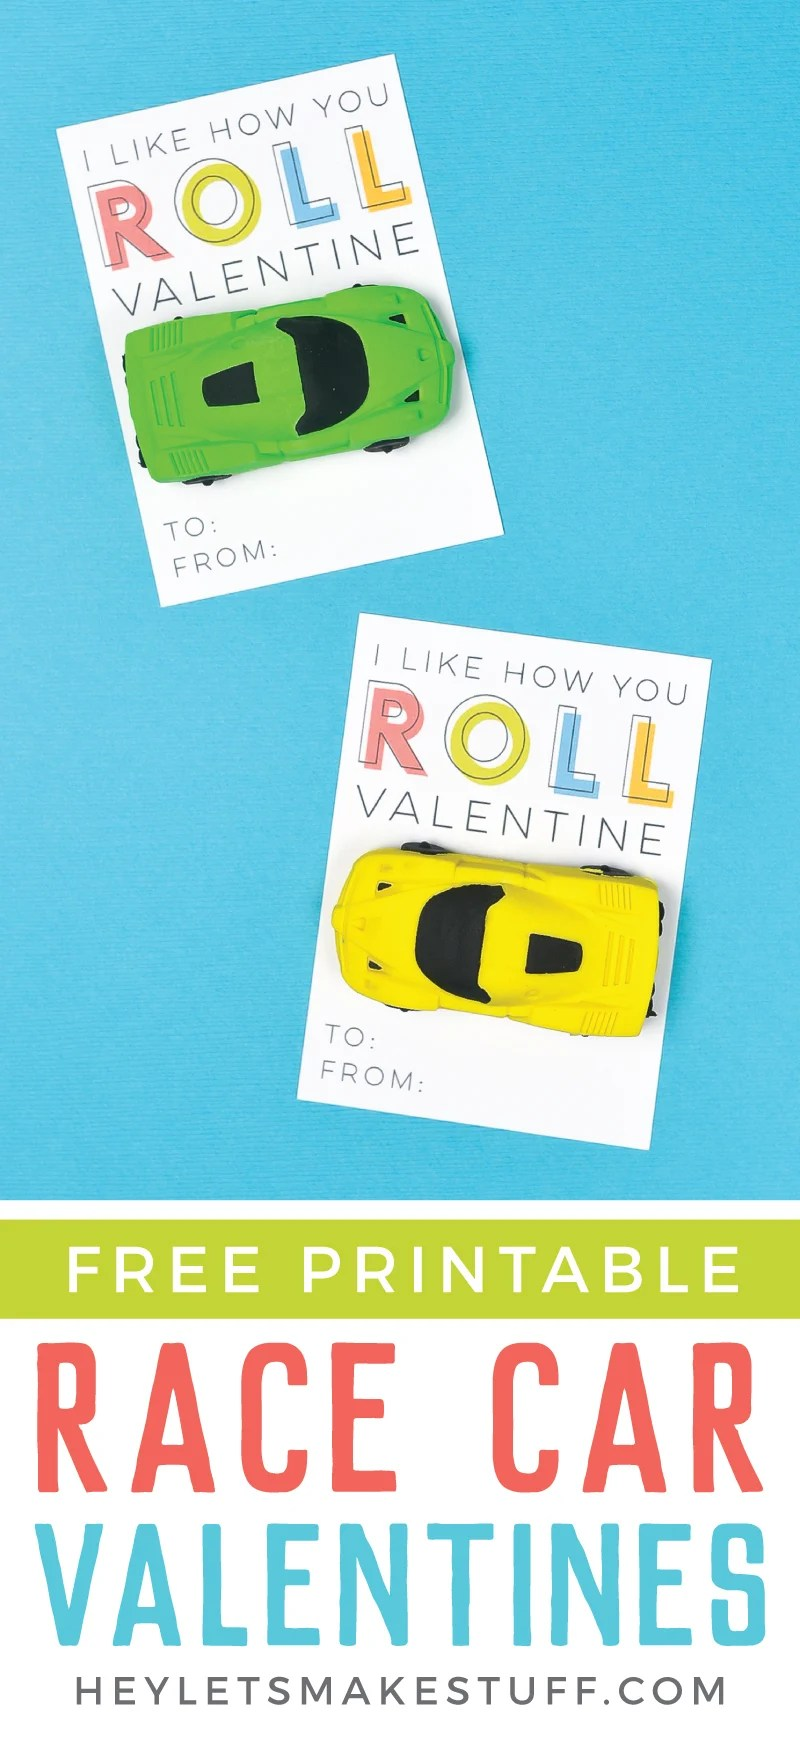 These fun printable Race Car Valentines are the perfect Valentine for boys and girls! Just print, add a cute novelty race car eraser, and you're ready to go—you can make them in less than 10 minutes! via @heyletsmakestuf